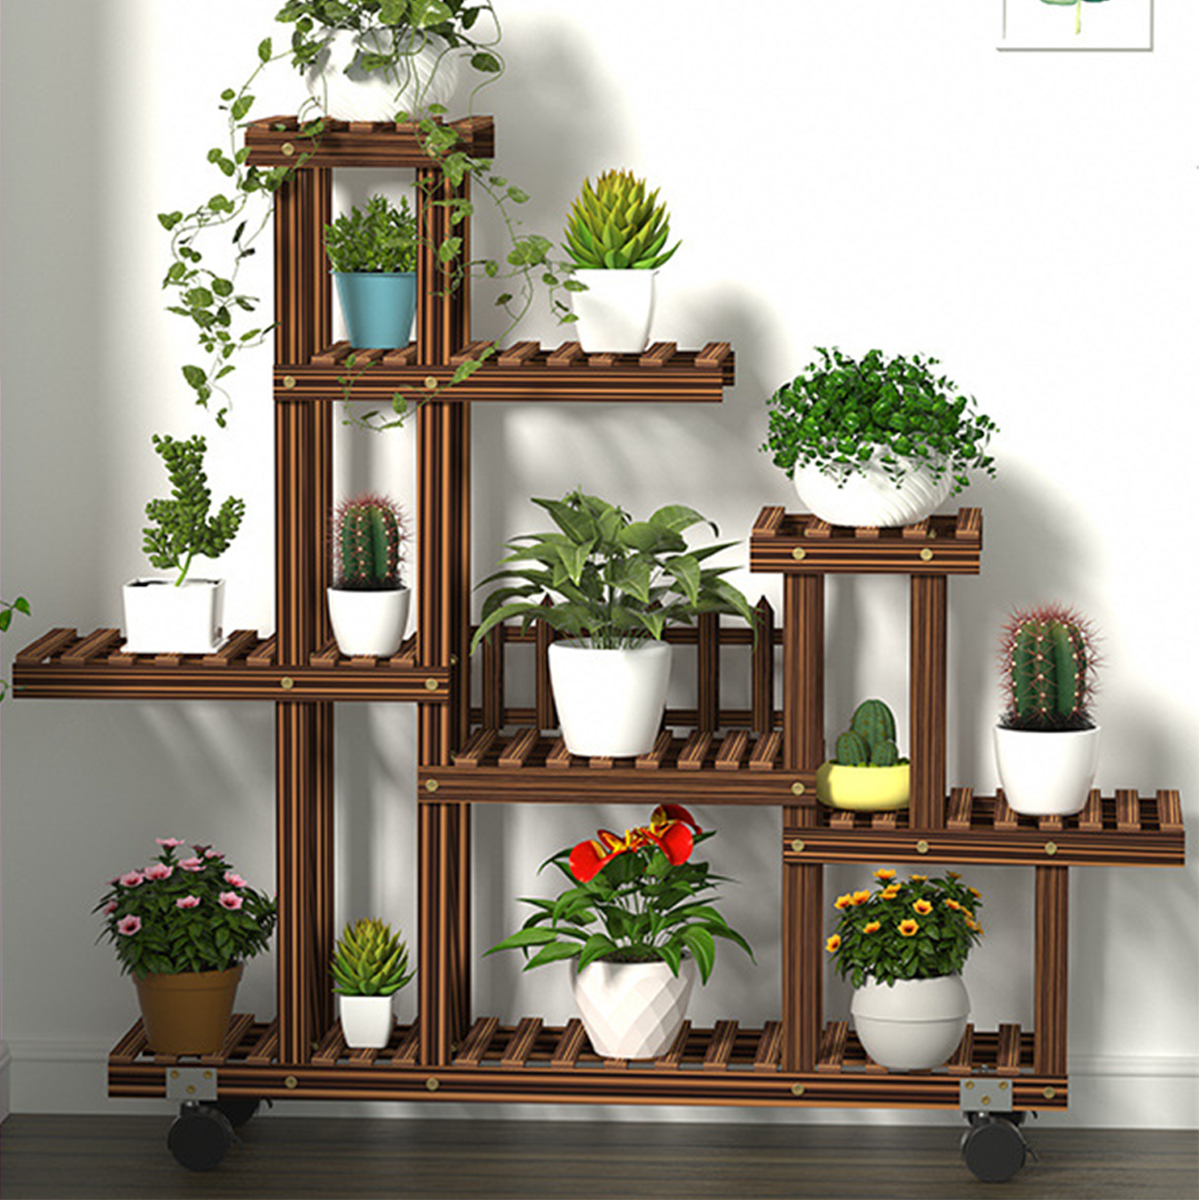 5 Tier Wooden Plant Stand Holder Flower Pot Shelf Garden Display Rack W Wheels Indoor Outdoor Windmill L Shaped Walmart Canada